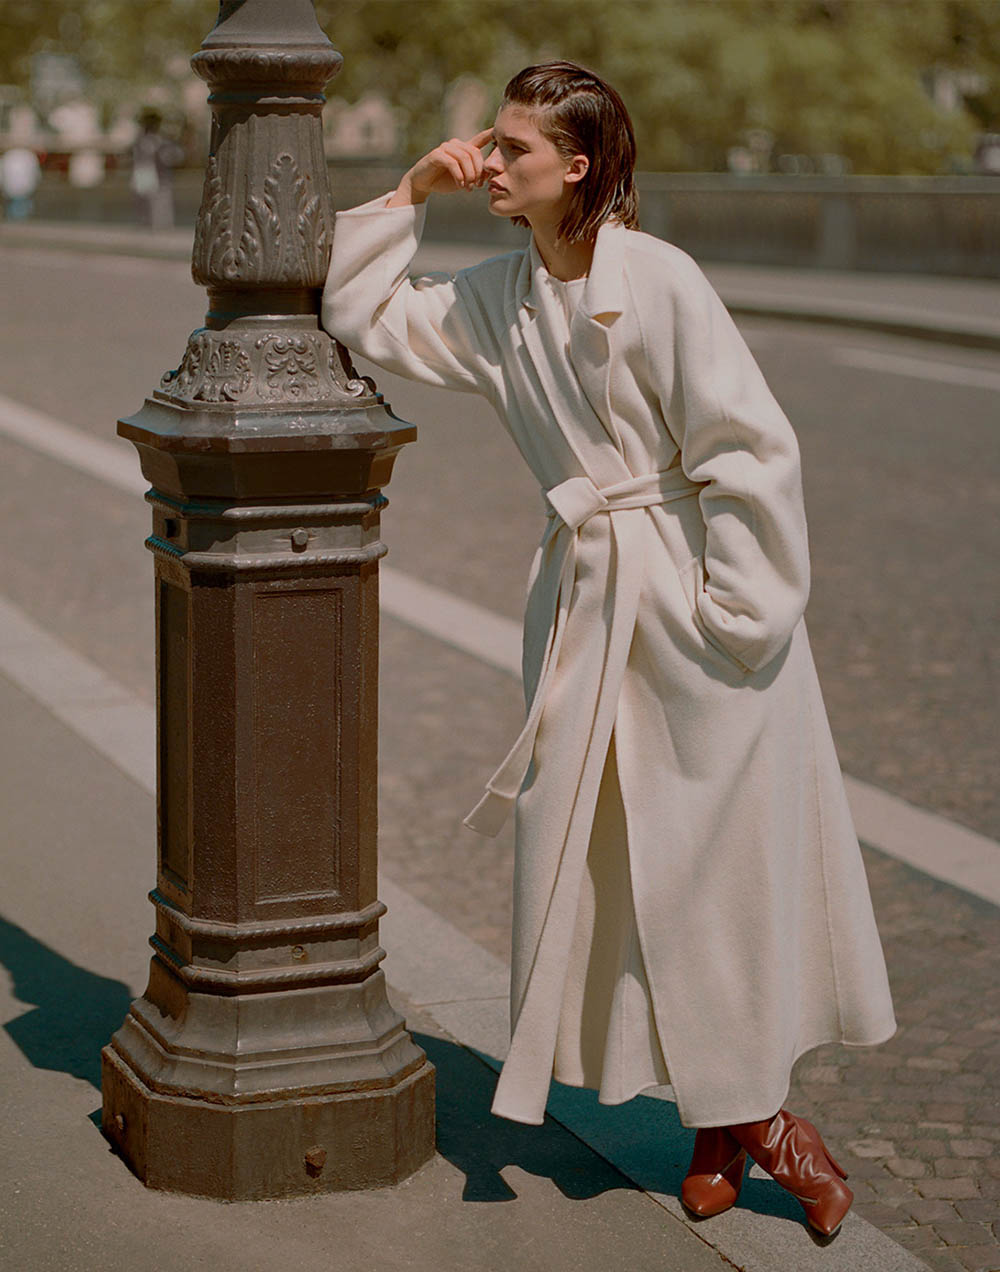 Julia van Os by Sebastian Sabal-Bruce for Porter Magazine Winter 2018